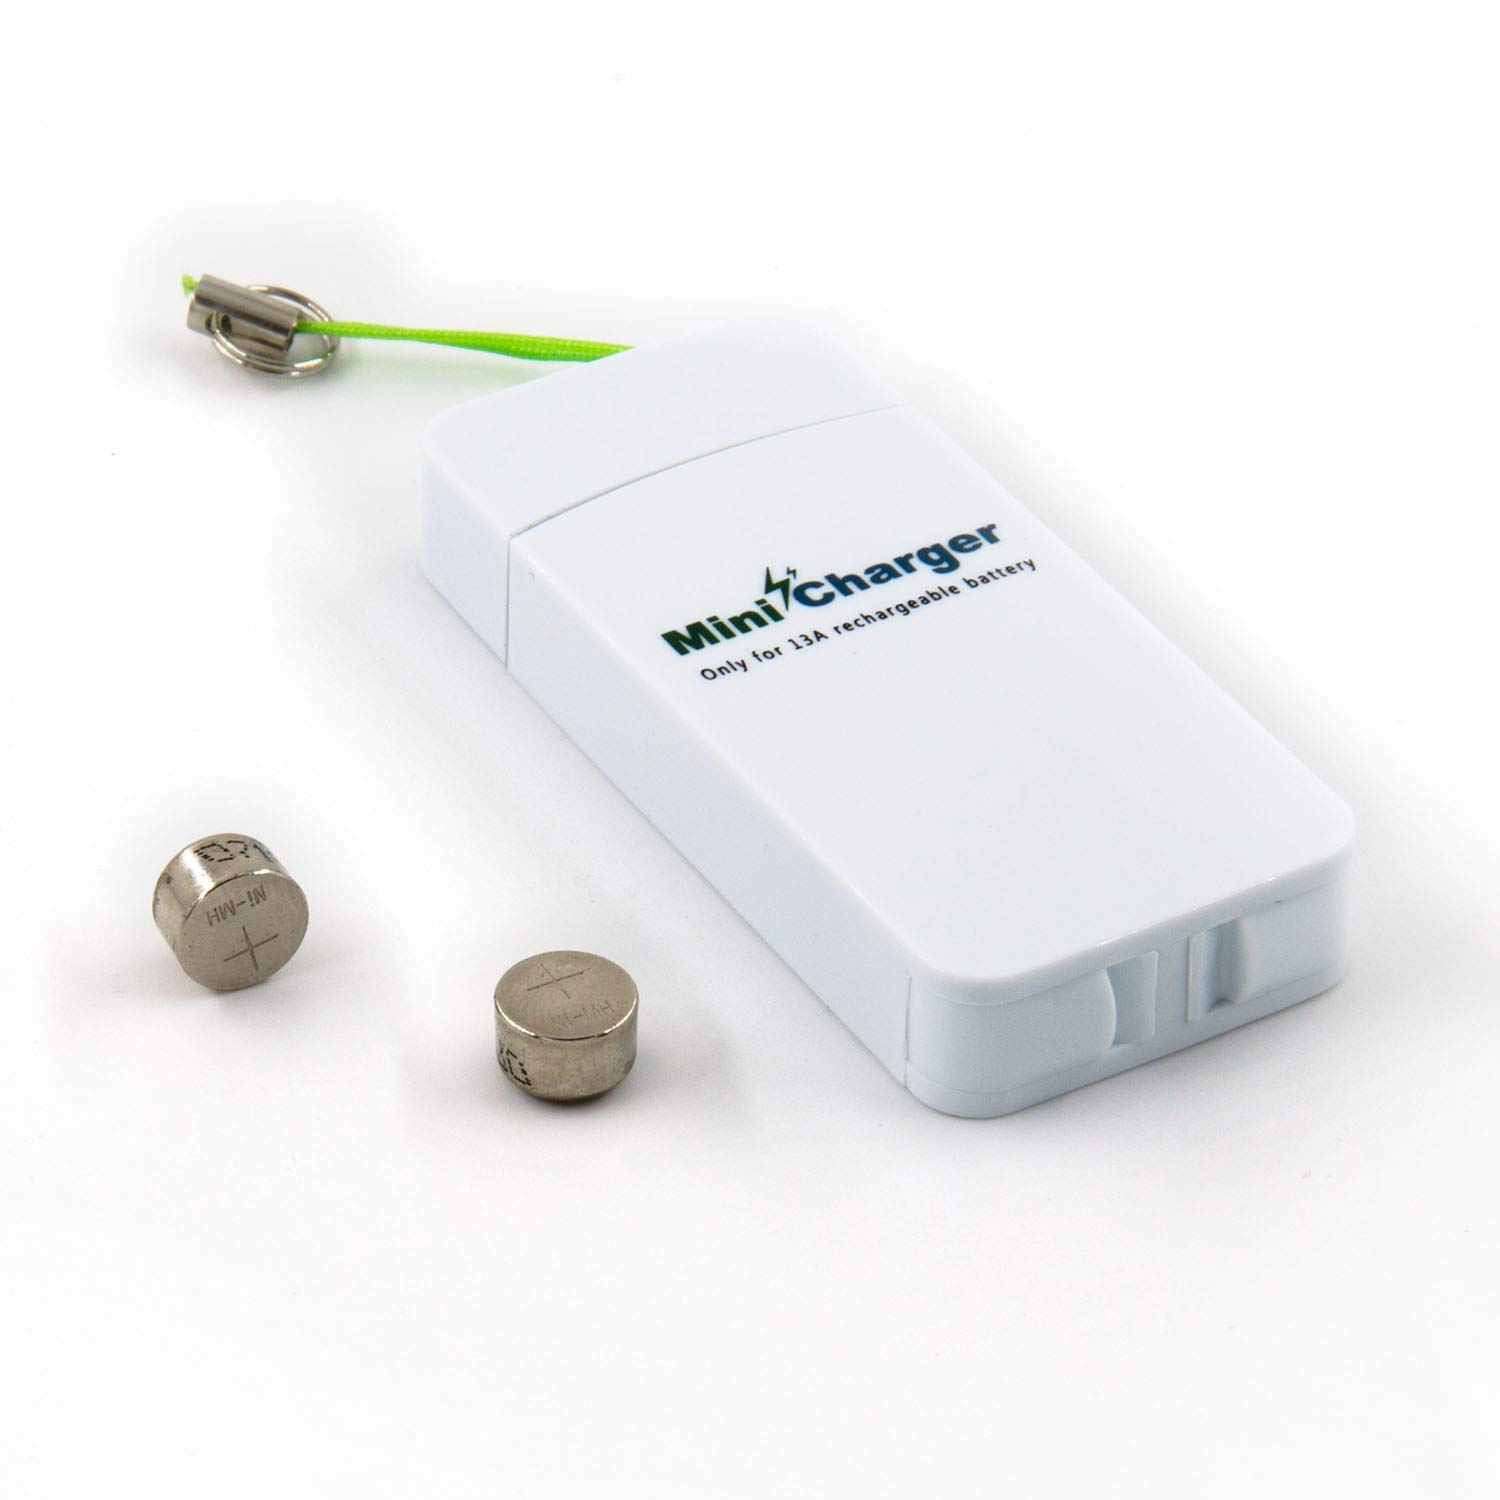 Hearing Aid Size 13 Battery Charger with Rechargeable Batteries, One Mini USB Charger and Two Size 13 NI-MH P13 Hearing Aid Batteries - Neosonic